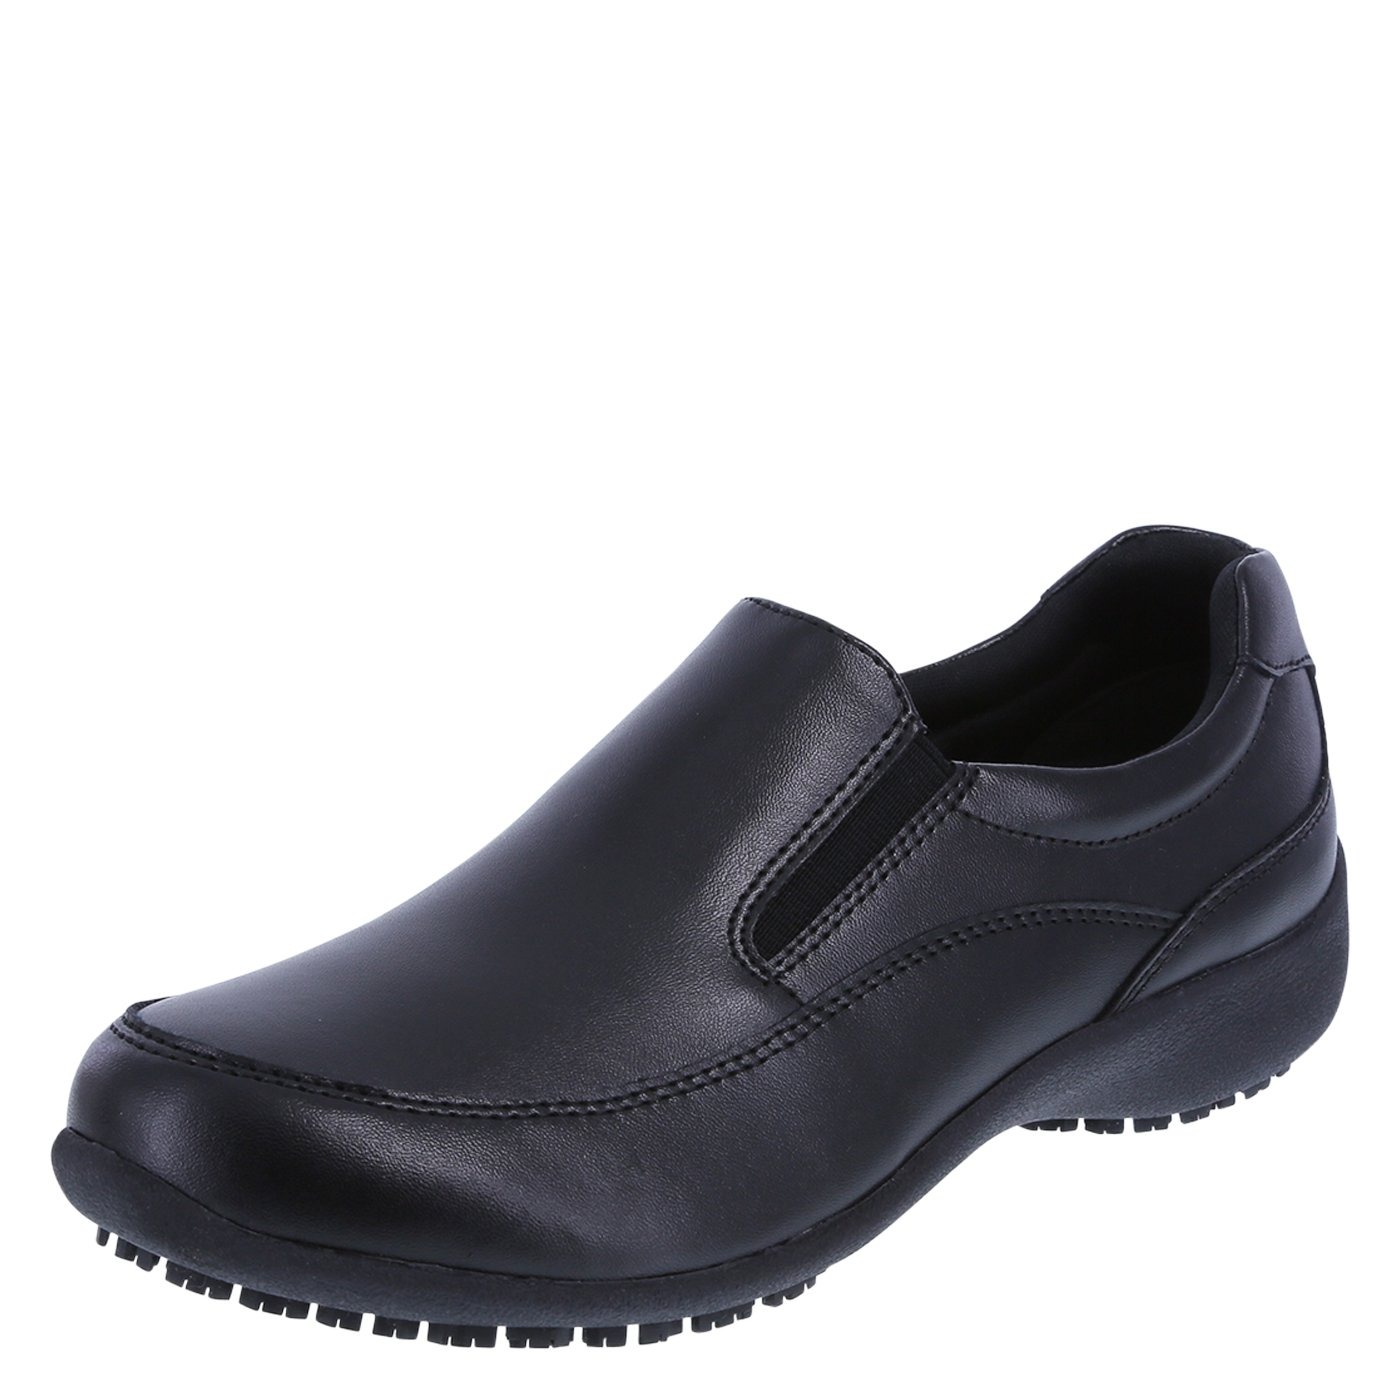 safeTstep レディース B01J91GUUY 8.5 C/D US|Black Leather Black Leather 8.5 C/D US